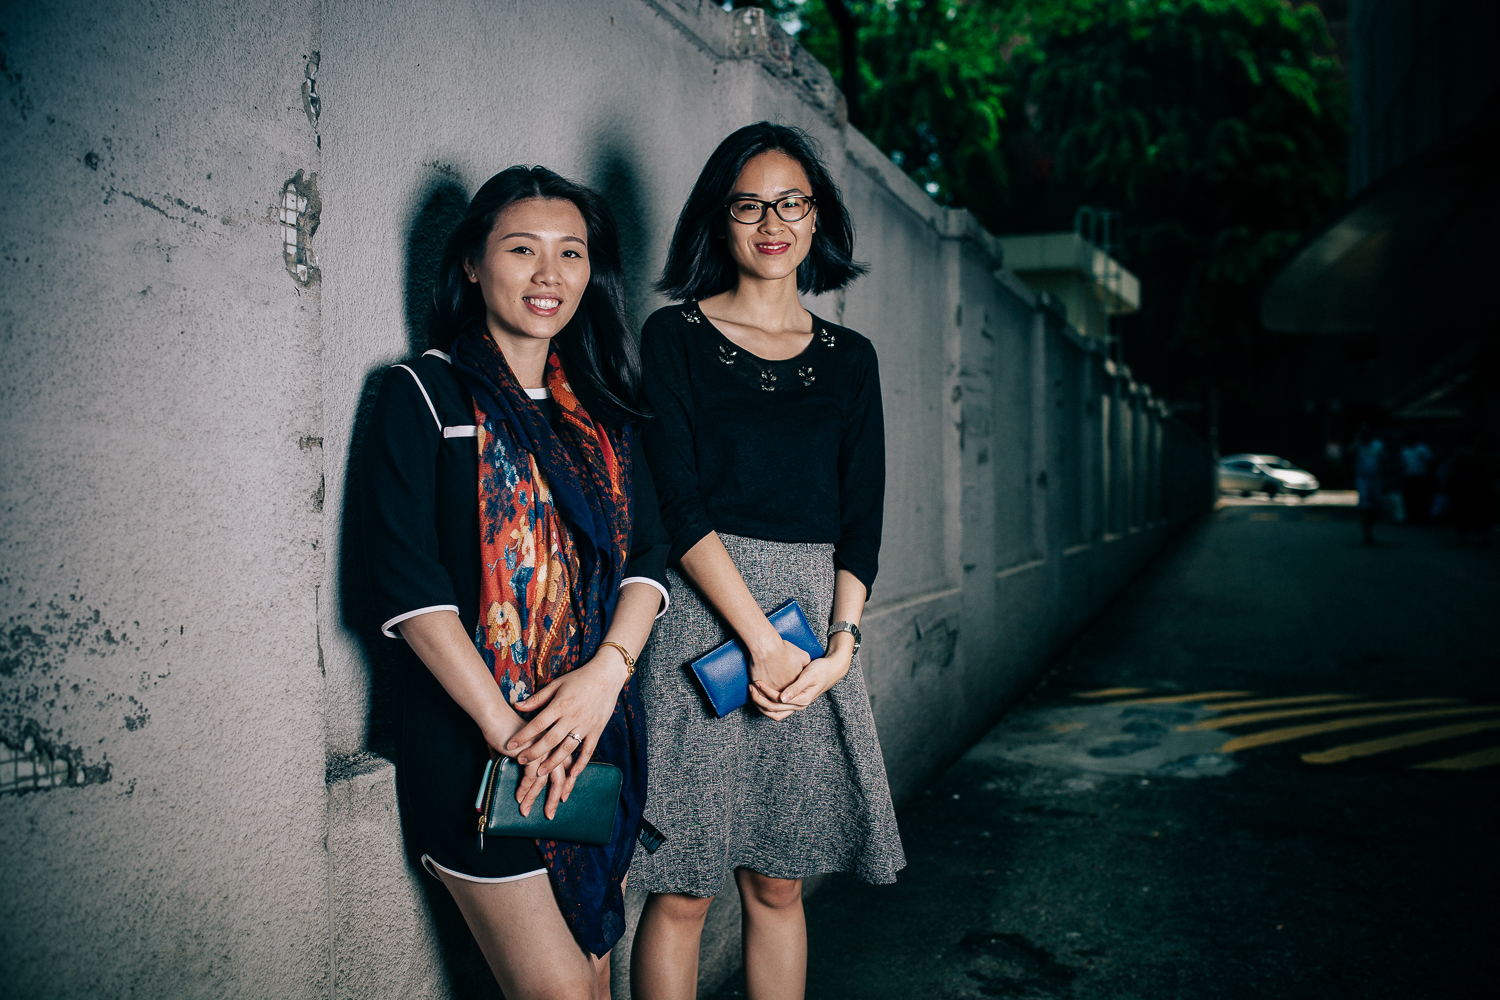 """""""I am most happy when I am at home where I can just enjoy sleeping and eating [laughs].""""  """"And for myself, happiness is when I am traveling with my friends. Just partying with them and being carefree."""" - Joyce & Seow Wei"""